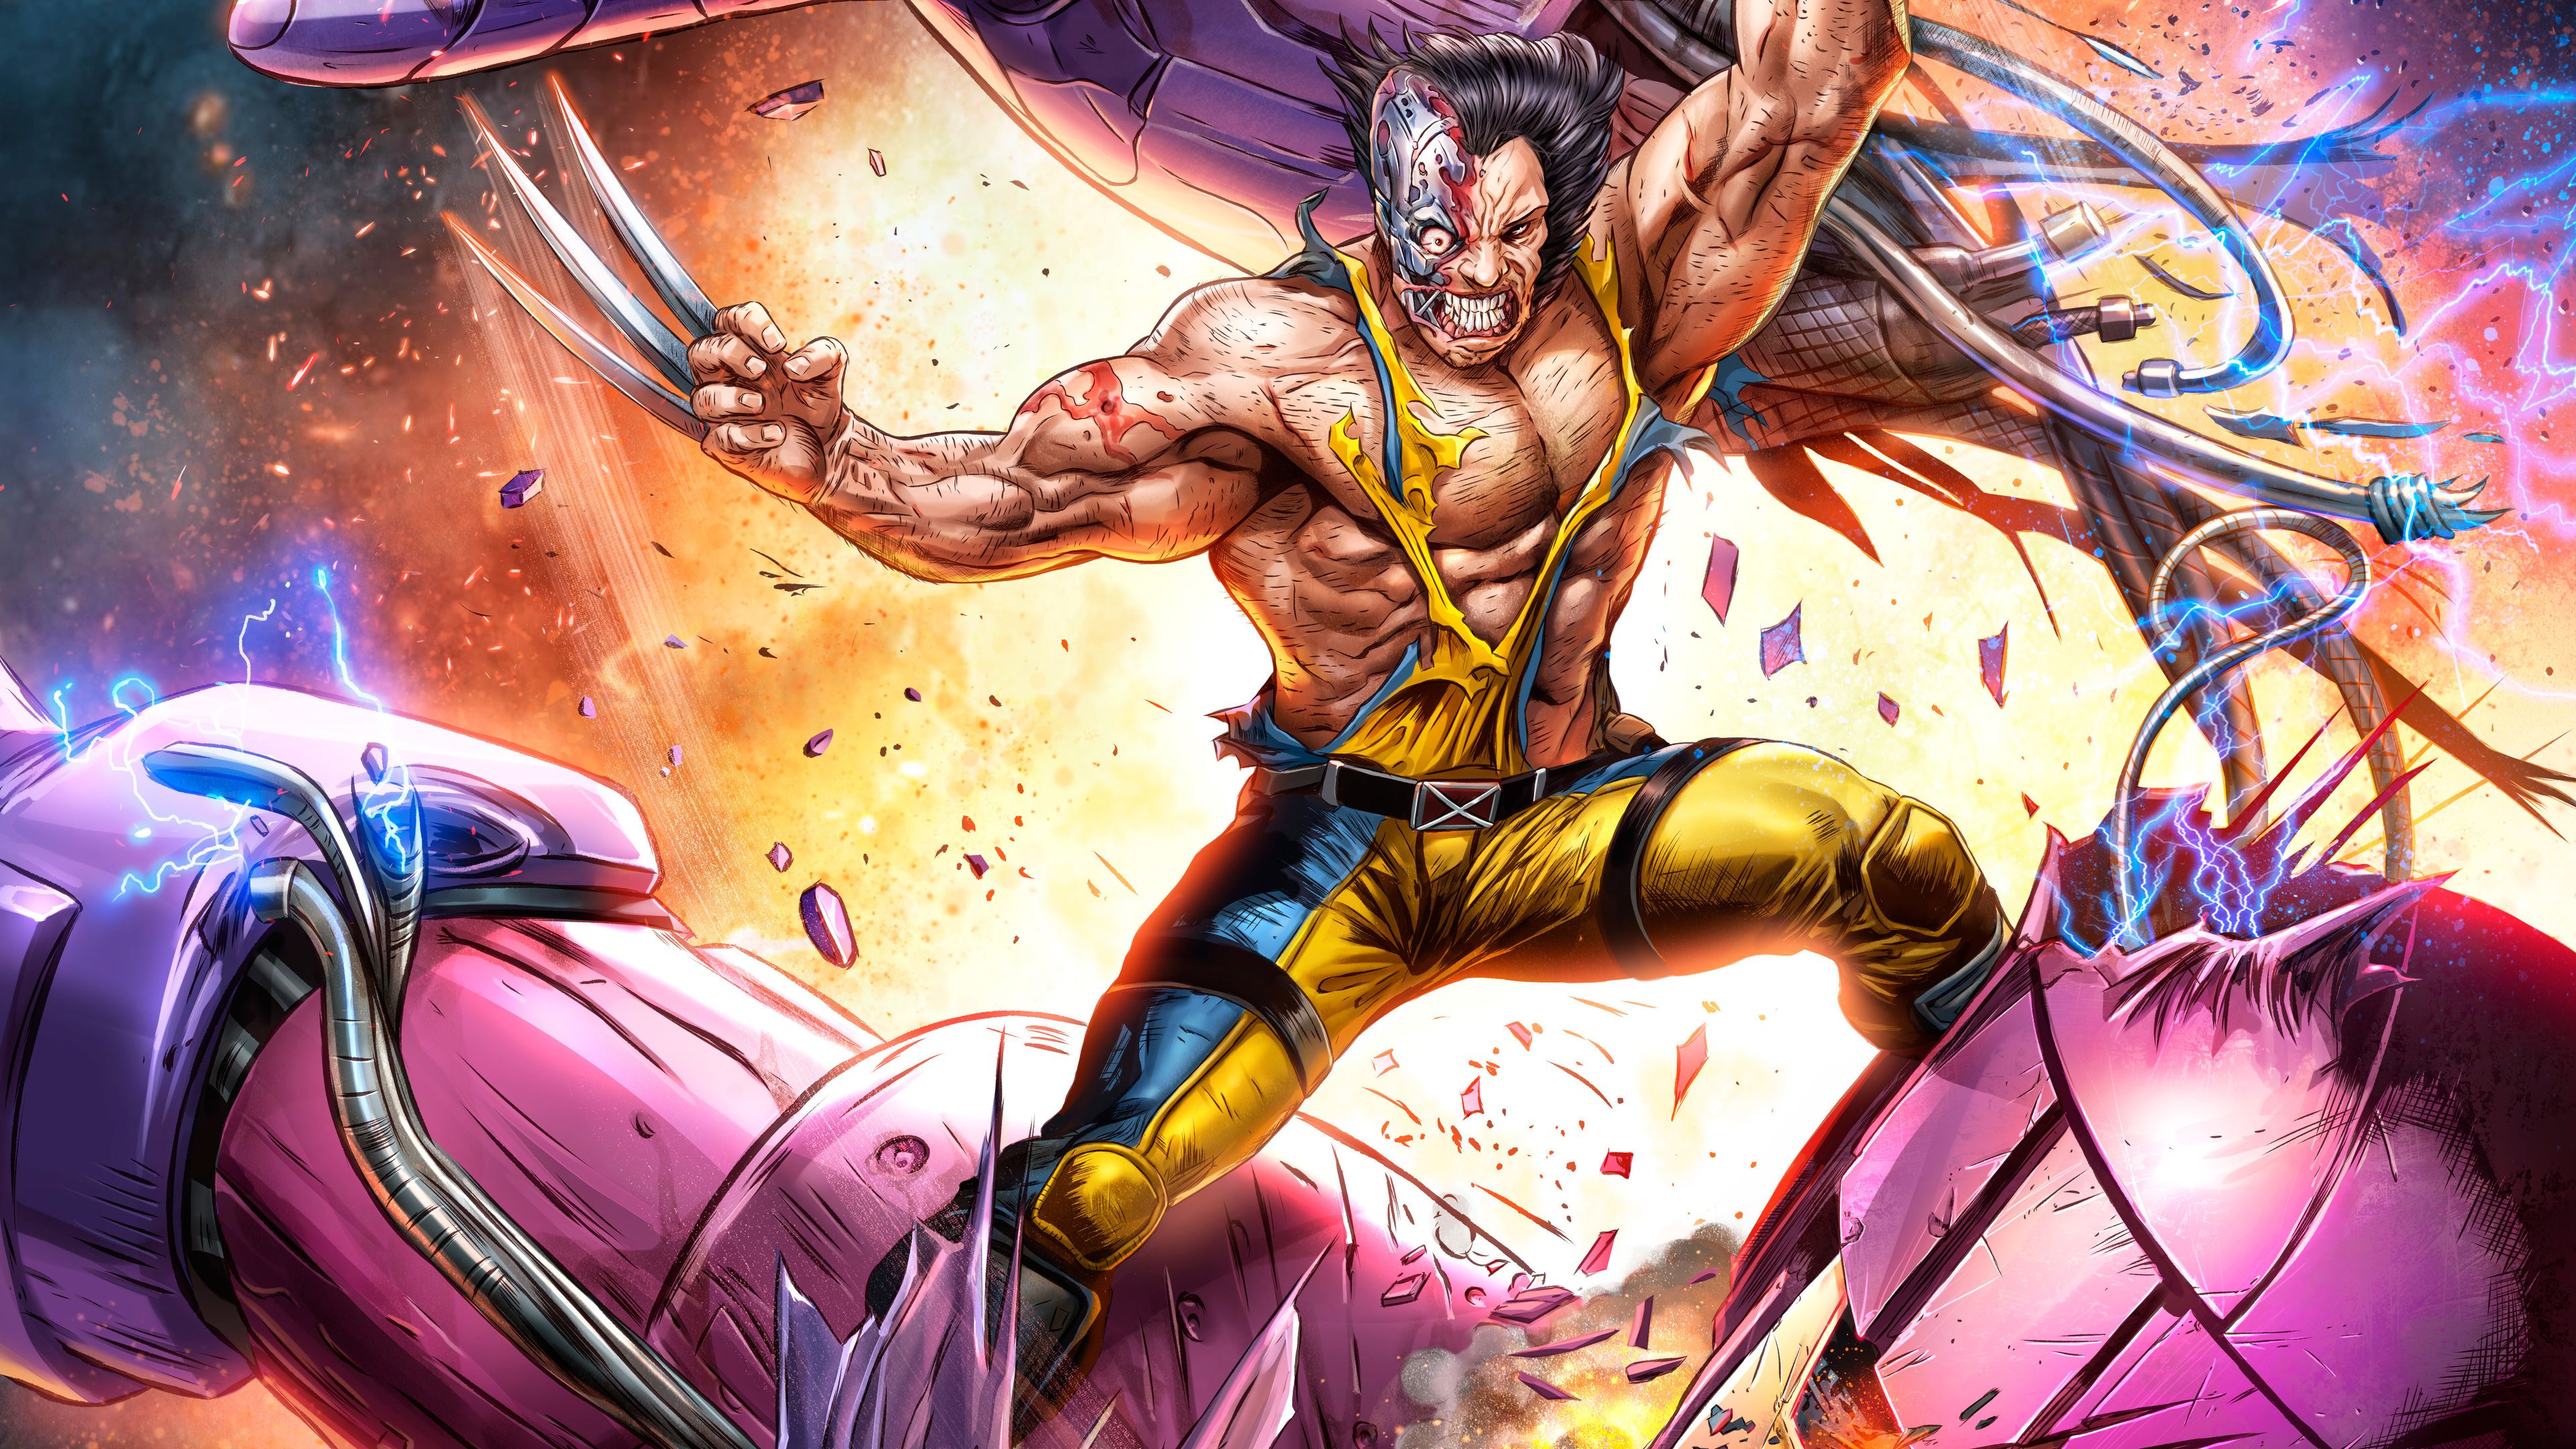 Wolverine Vs Sentinel Artwork 5k Marvel Wallpaper Art Wallpaper Hero Wallpaper